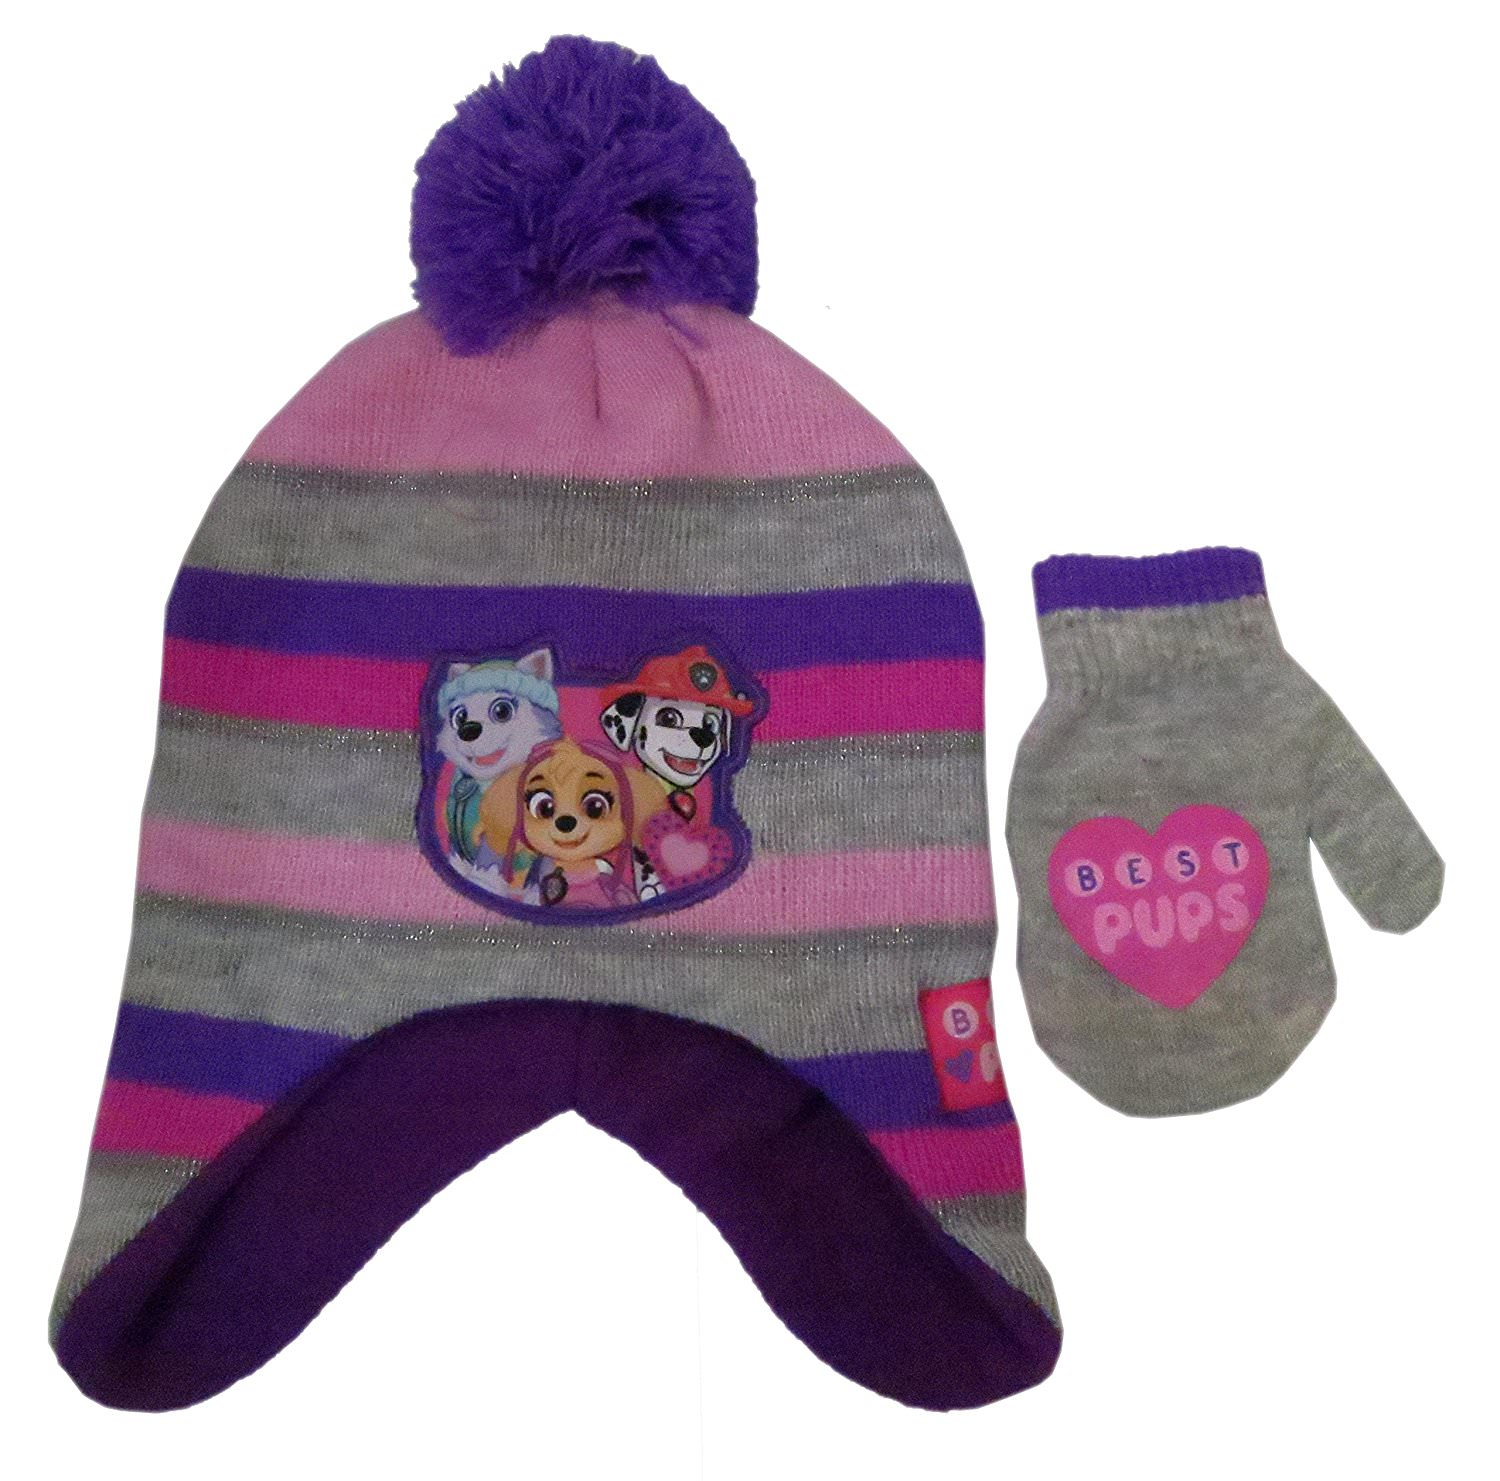 e2276f9f6 Nickelodeon Toddler Girls/Boys Paw Patrol Knit Scandinavian Hat with Pompom  and Matching Mitten Set